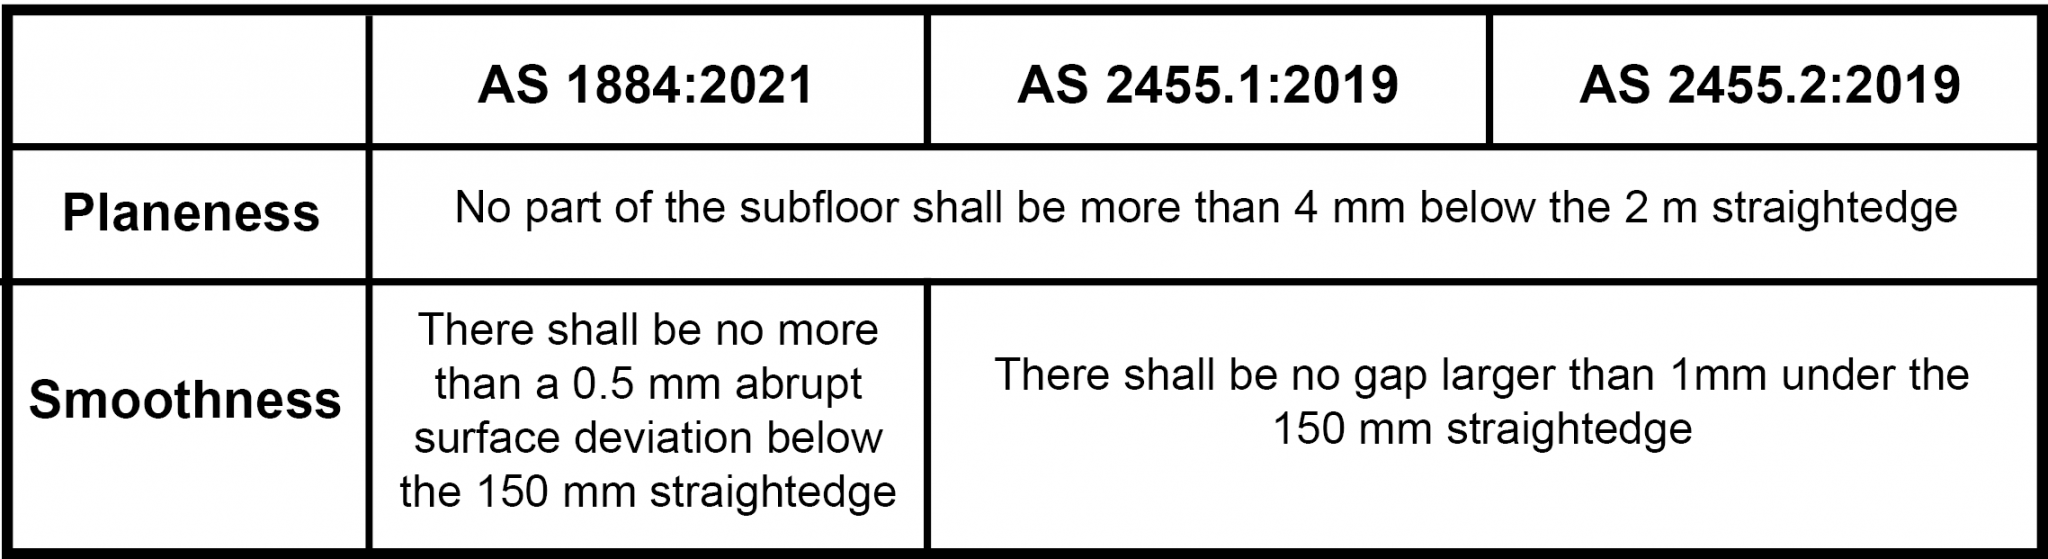 Australian Standards for planeness and smoothness of floor coverings